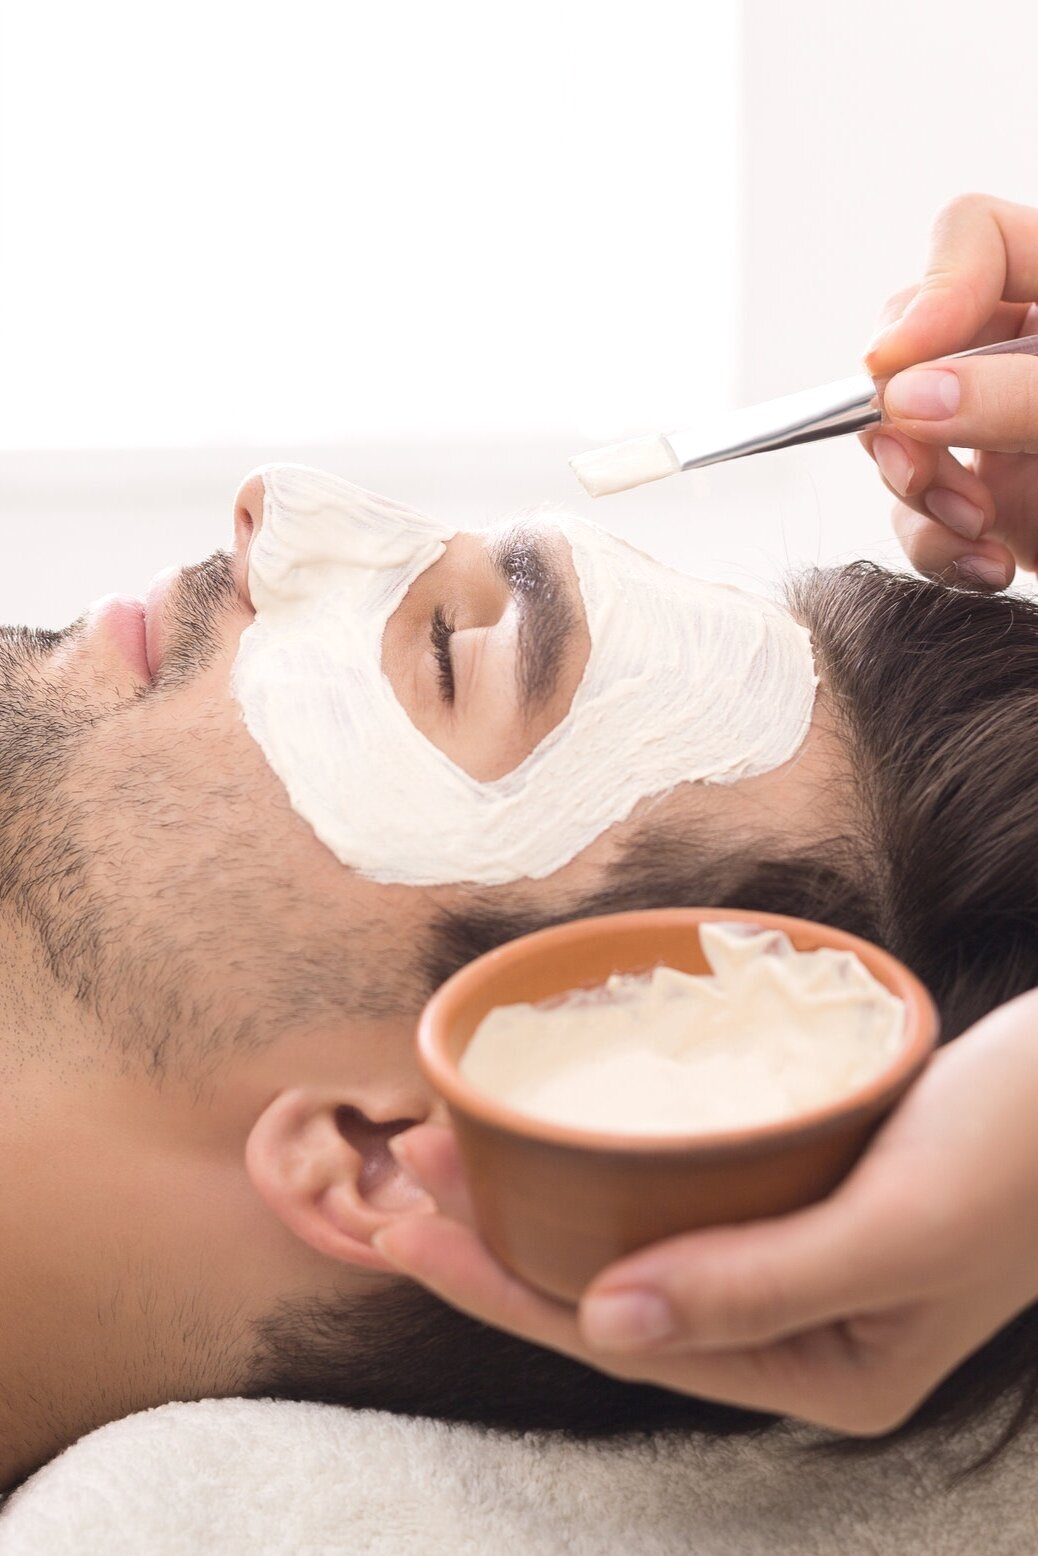 75 min | $175.00 - Relax and enjoy yourself as lines and wrinkles are minimized. Your skin's complexion is left smooth, firm and rejuvenated after this highly effective - advanced treatment.Deep Cleanse, Microdermabrasion, Specialty Mask, Hydrating Eye Treatment and Dewy Lip Treatment.- also including : facial, neck & shoulder massage -